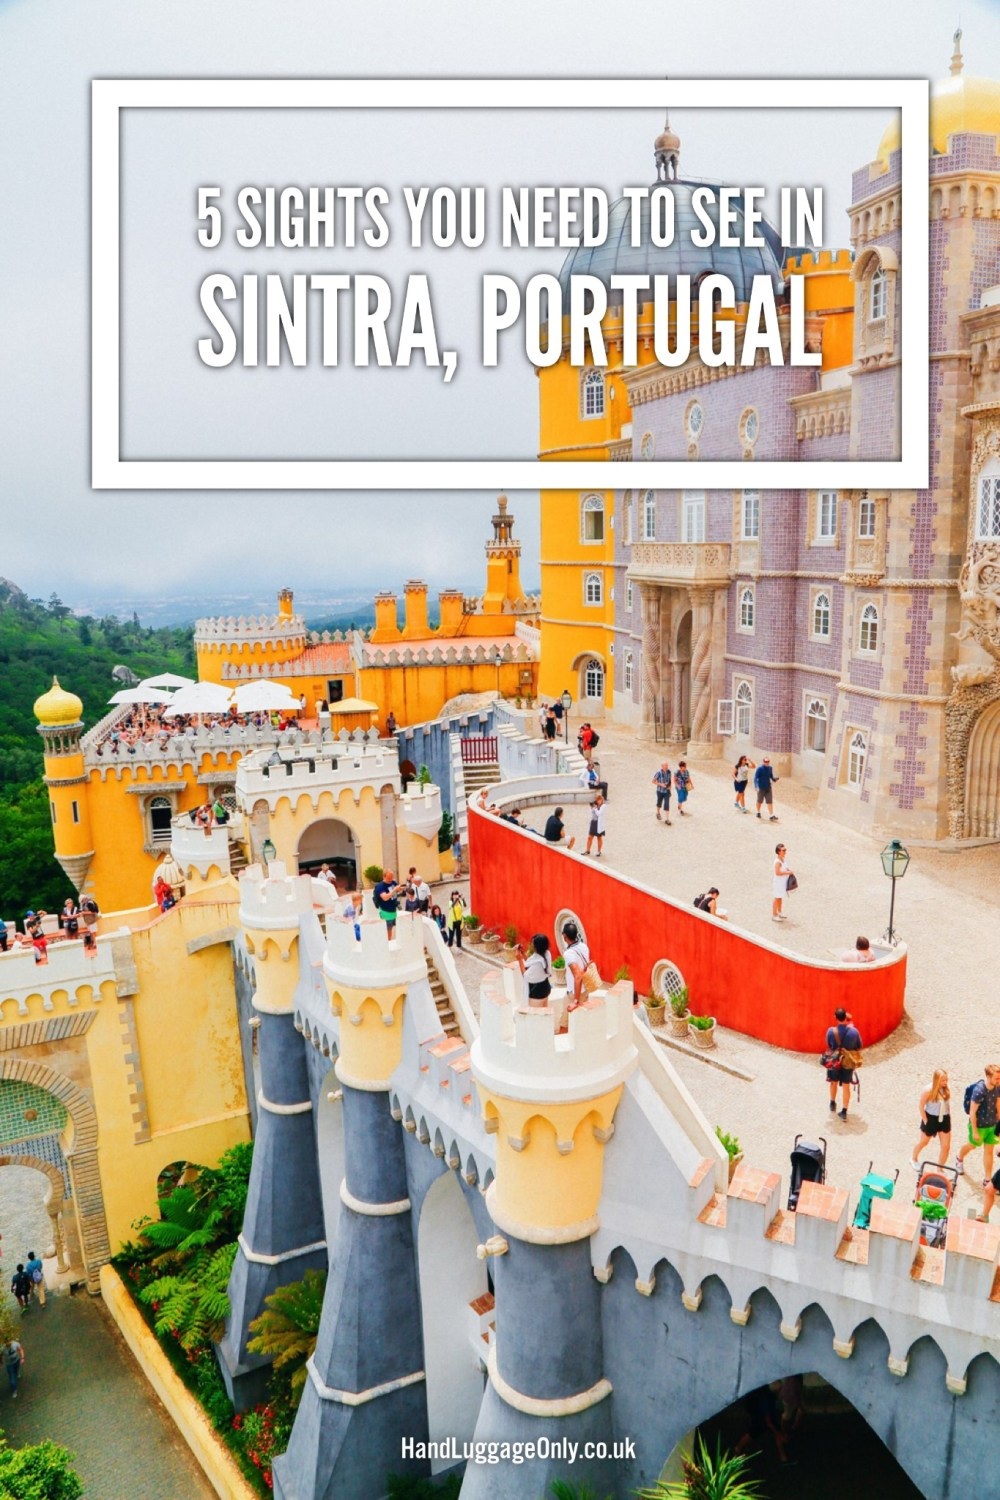 5 Sights You Need To See In Sintra, Portugal (1)